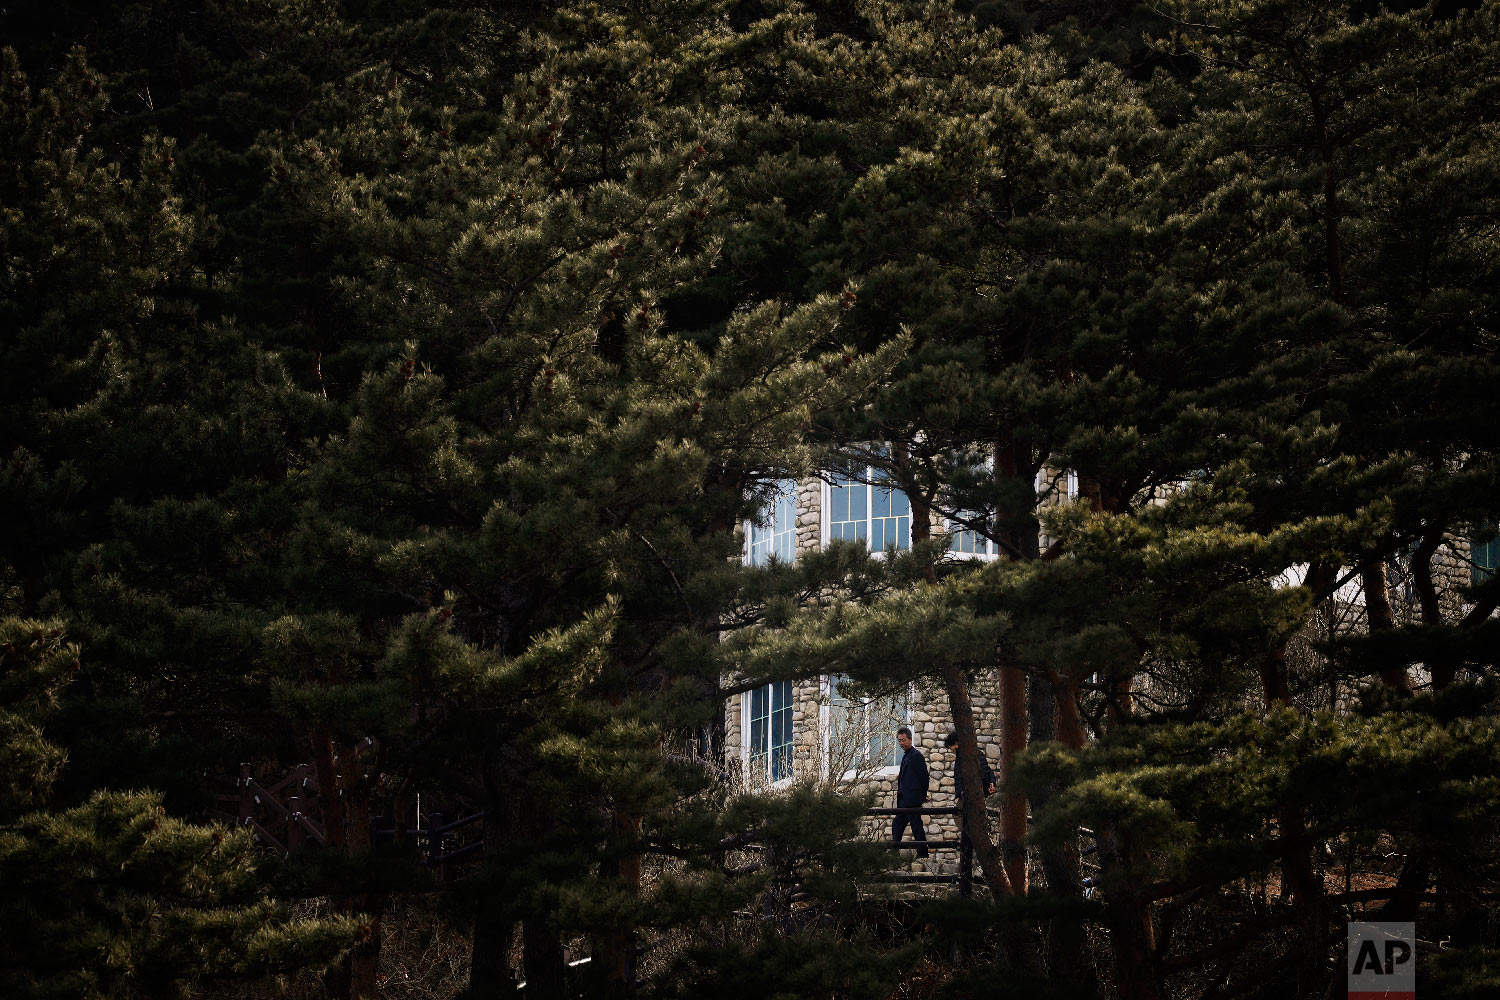 Surrounded by pine trees, visitors tour the villa known as Hwajinpo Castle, once a holiday home for late North Korea founder Kim Il Sung, at Hwajinpo Beach, South Korea, Monday, Feb. 19, 2018.(AP Photo/Jae C. Hong)